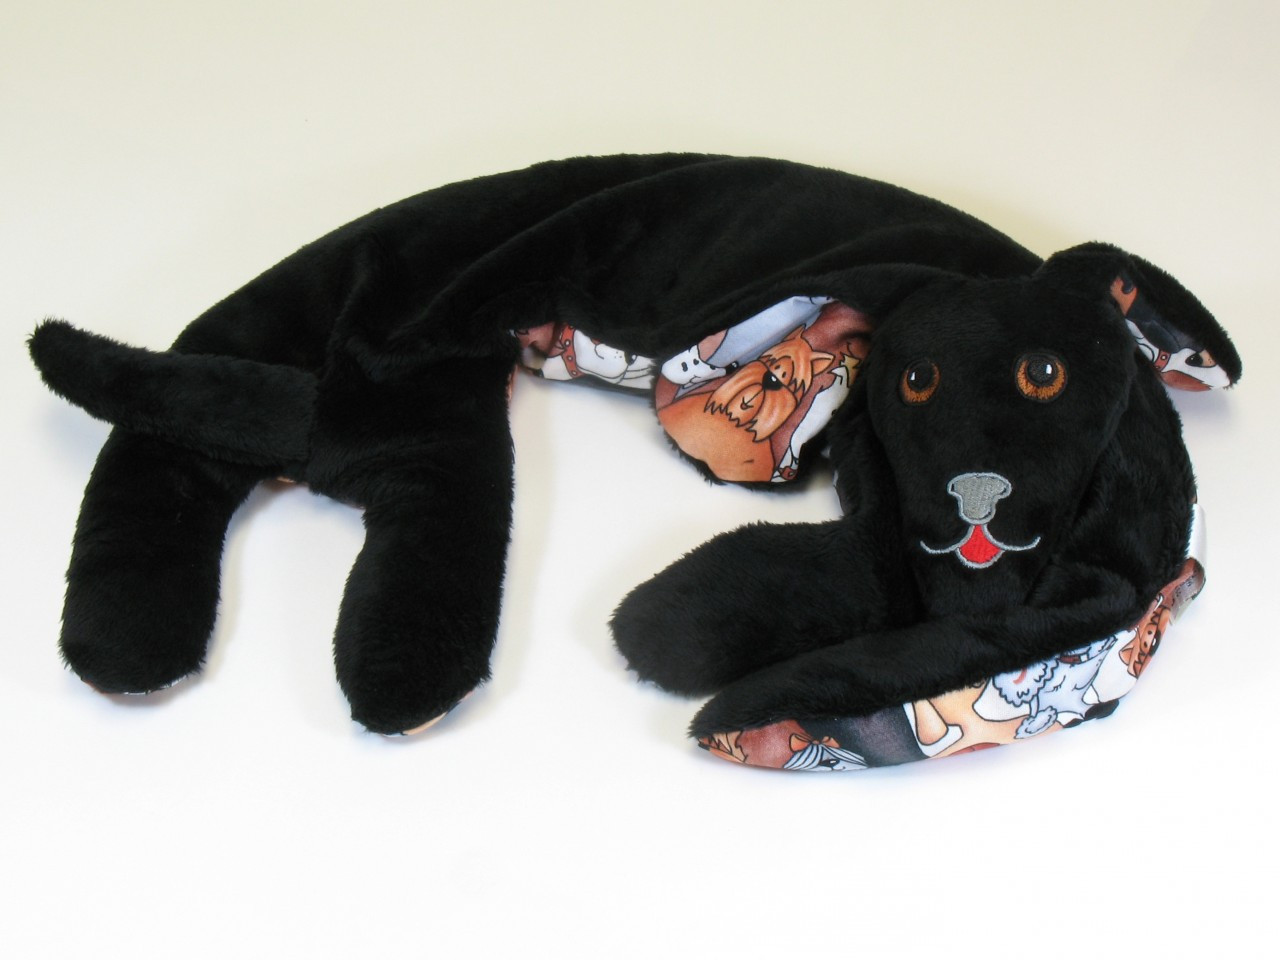 Neck Wrap Black Puppy Hug for Hot or Cold Therapy